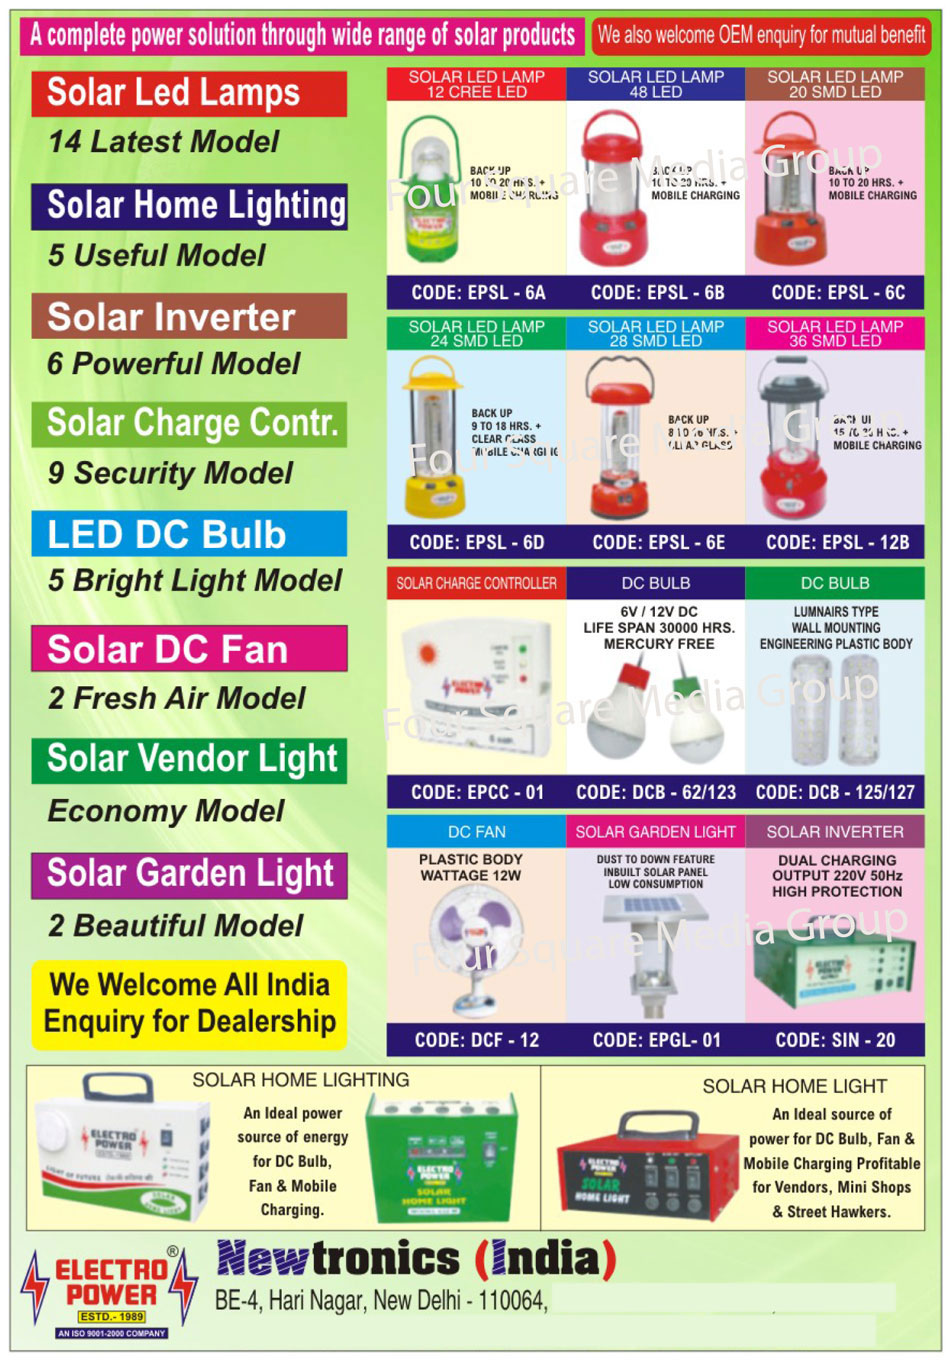 Solar Products, Solar LED Lamp, Solar Home Lights, Solar Hybrid Inverter, Solar Charge Controller, LED DC Bulb, Solar DC Fan, Solar Vendor Lights, Solar Garden Lights, Solar Inverters,Led Lamp, Home Lights, Charge Controller, Garden Light